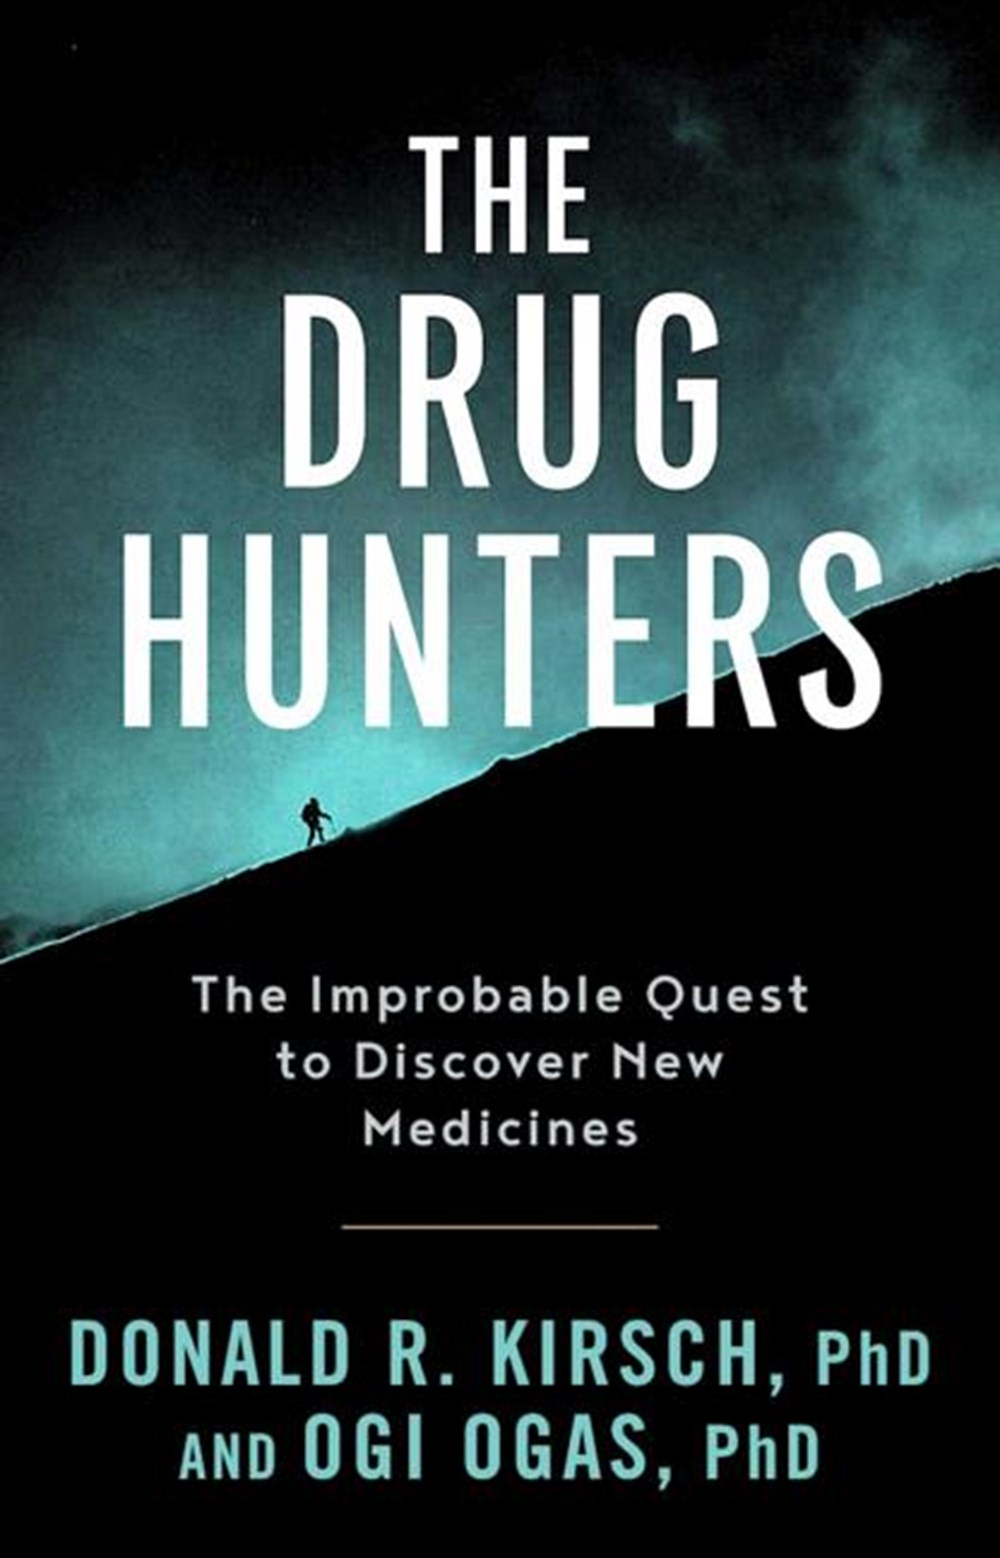 Drug Hunters: The Improbable Quest to Discover New Medicines